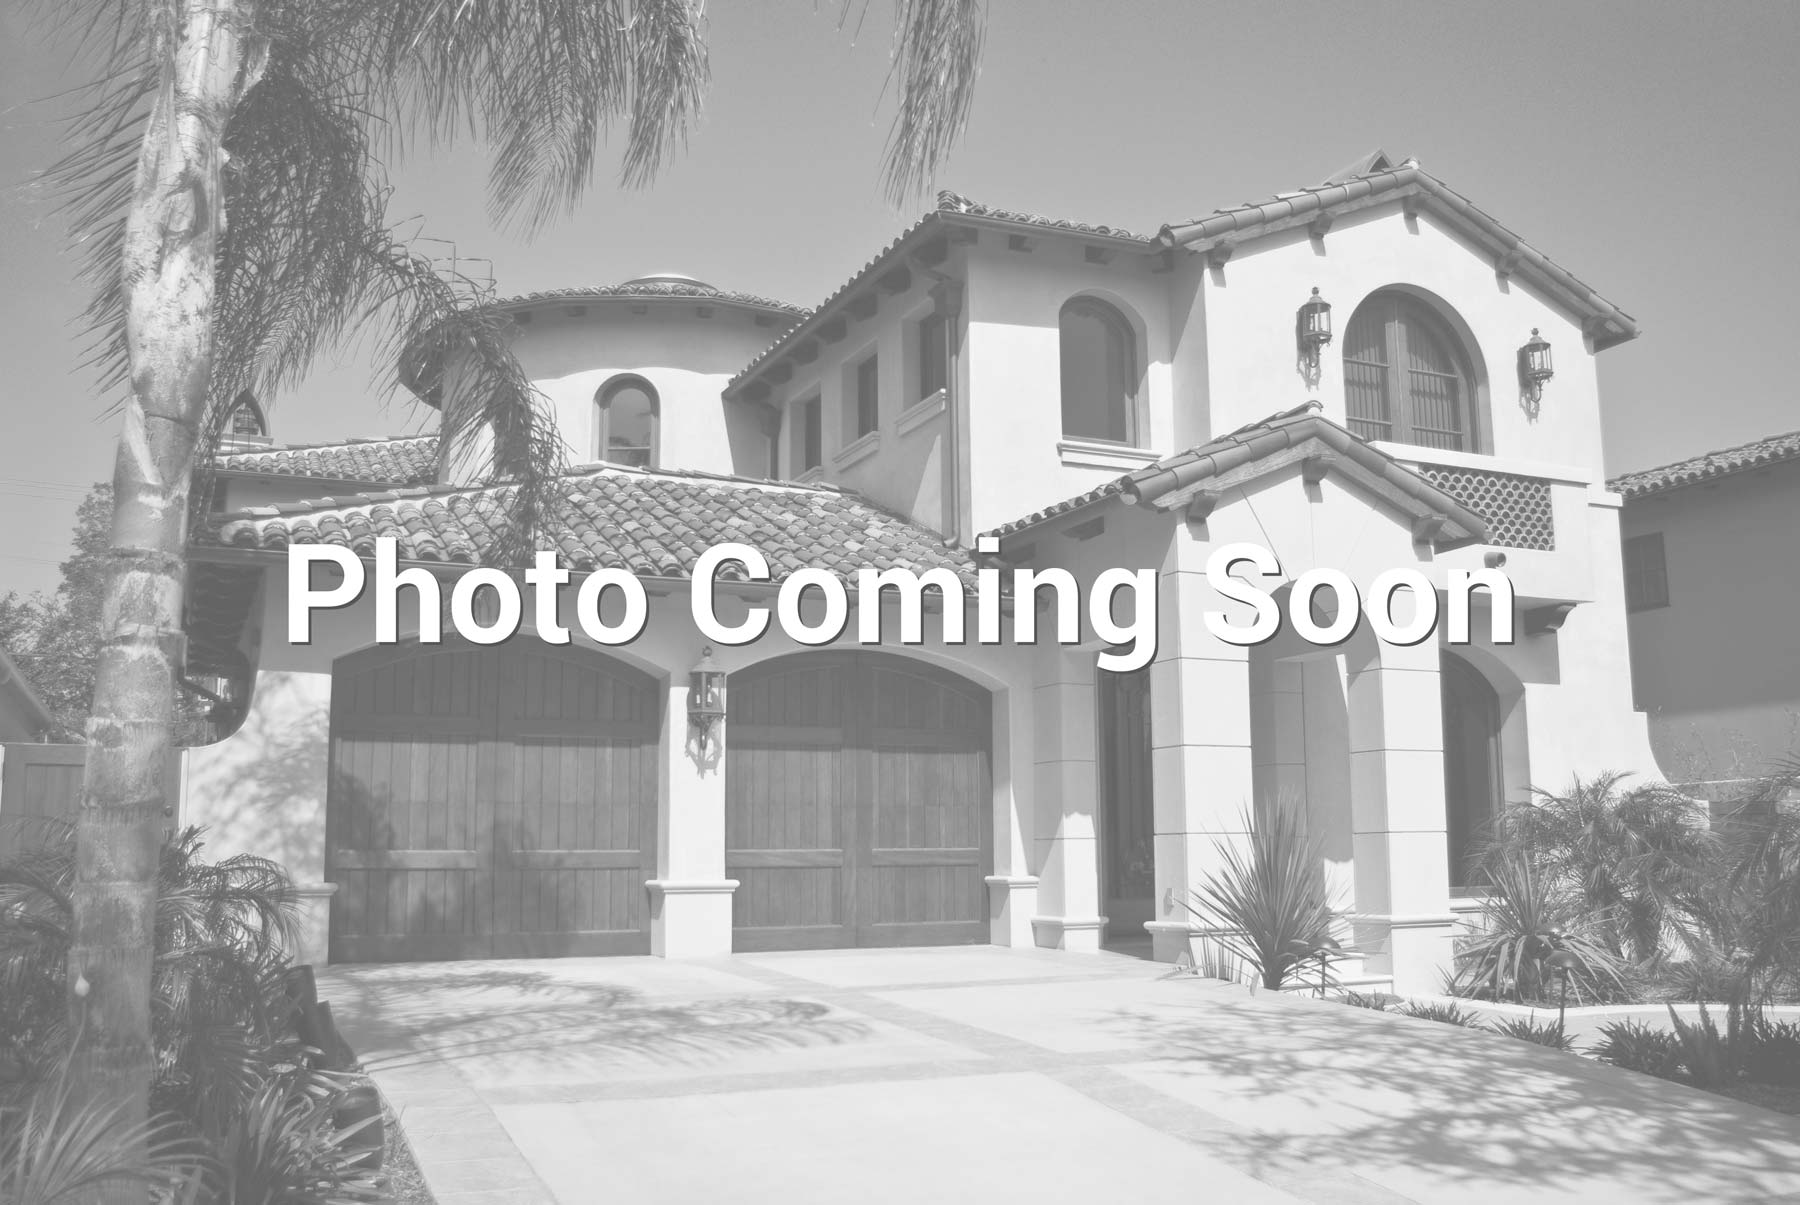 $295,000 - 4Br/3Ba - Home for Sale in Maryvale Terrace 19 Lts 6441-6445 & Tr A, Phoenix